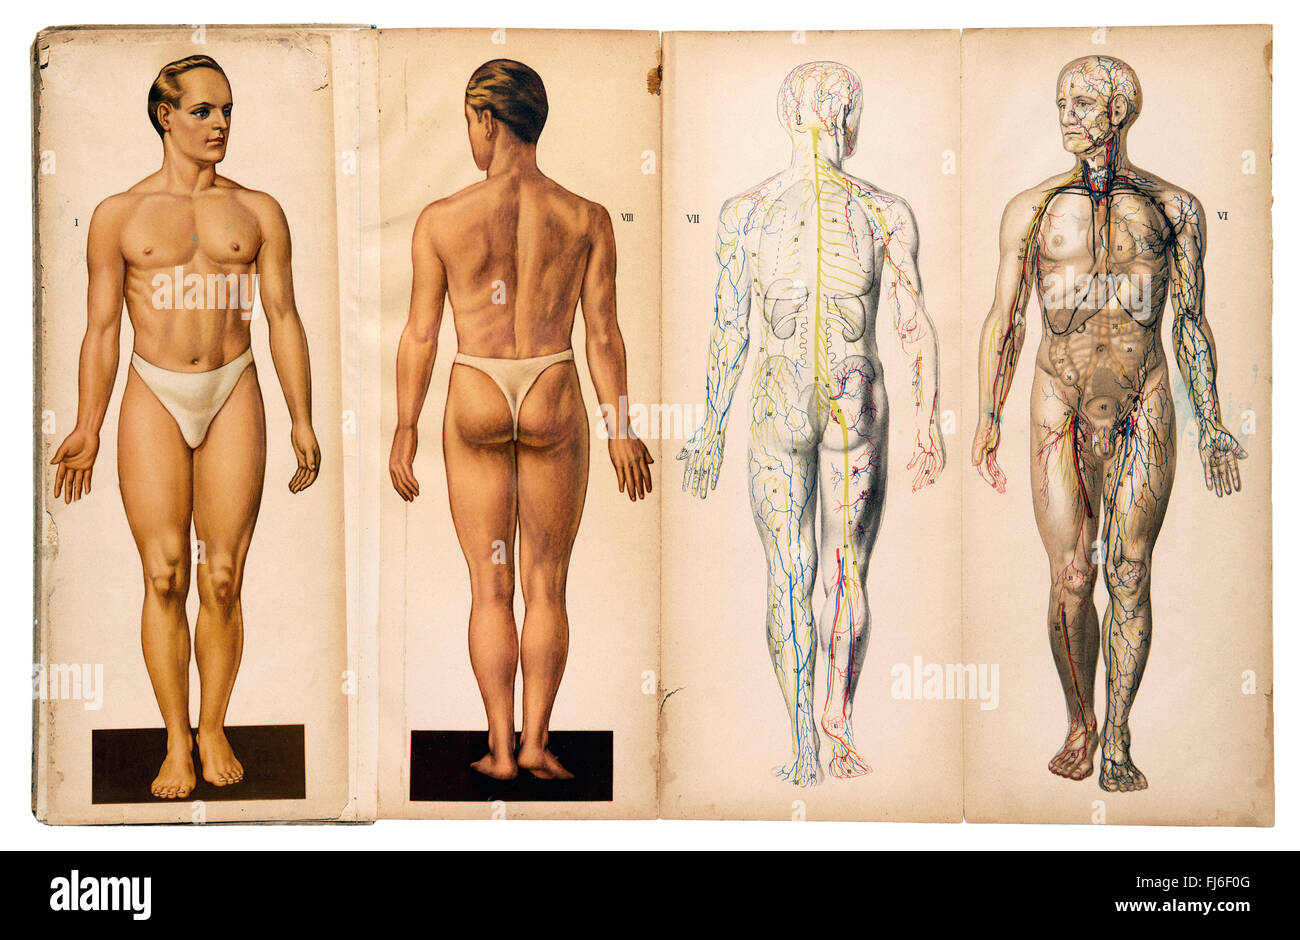 Anatomical Diagram Body Stockfotos & Anatomical Diagram Body Bilder ...